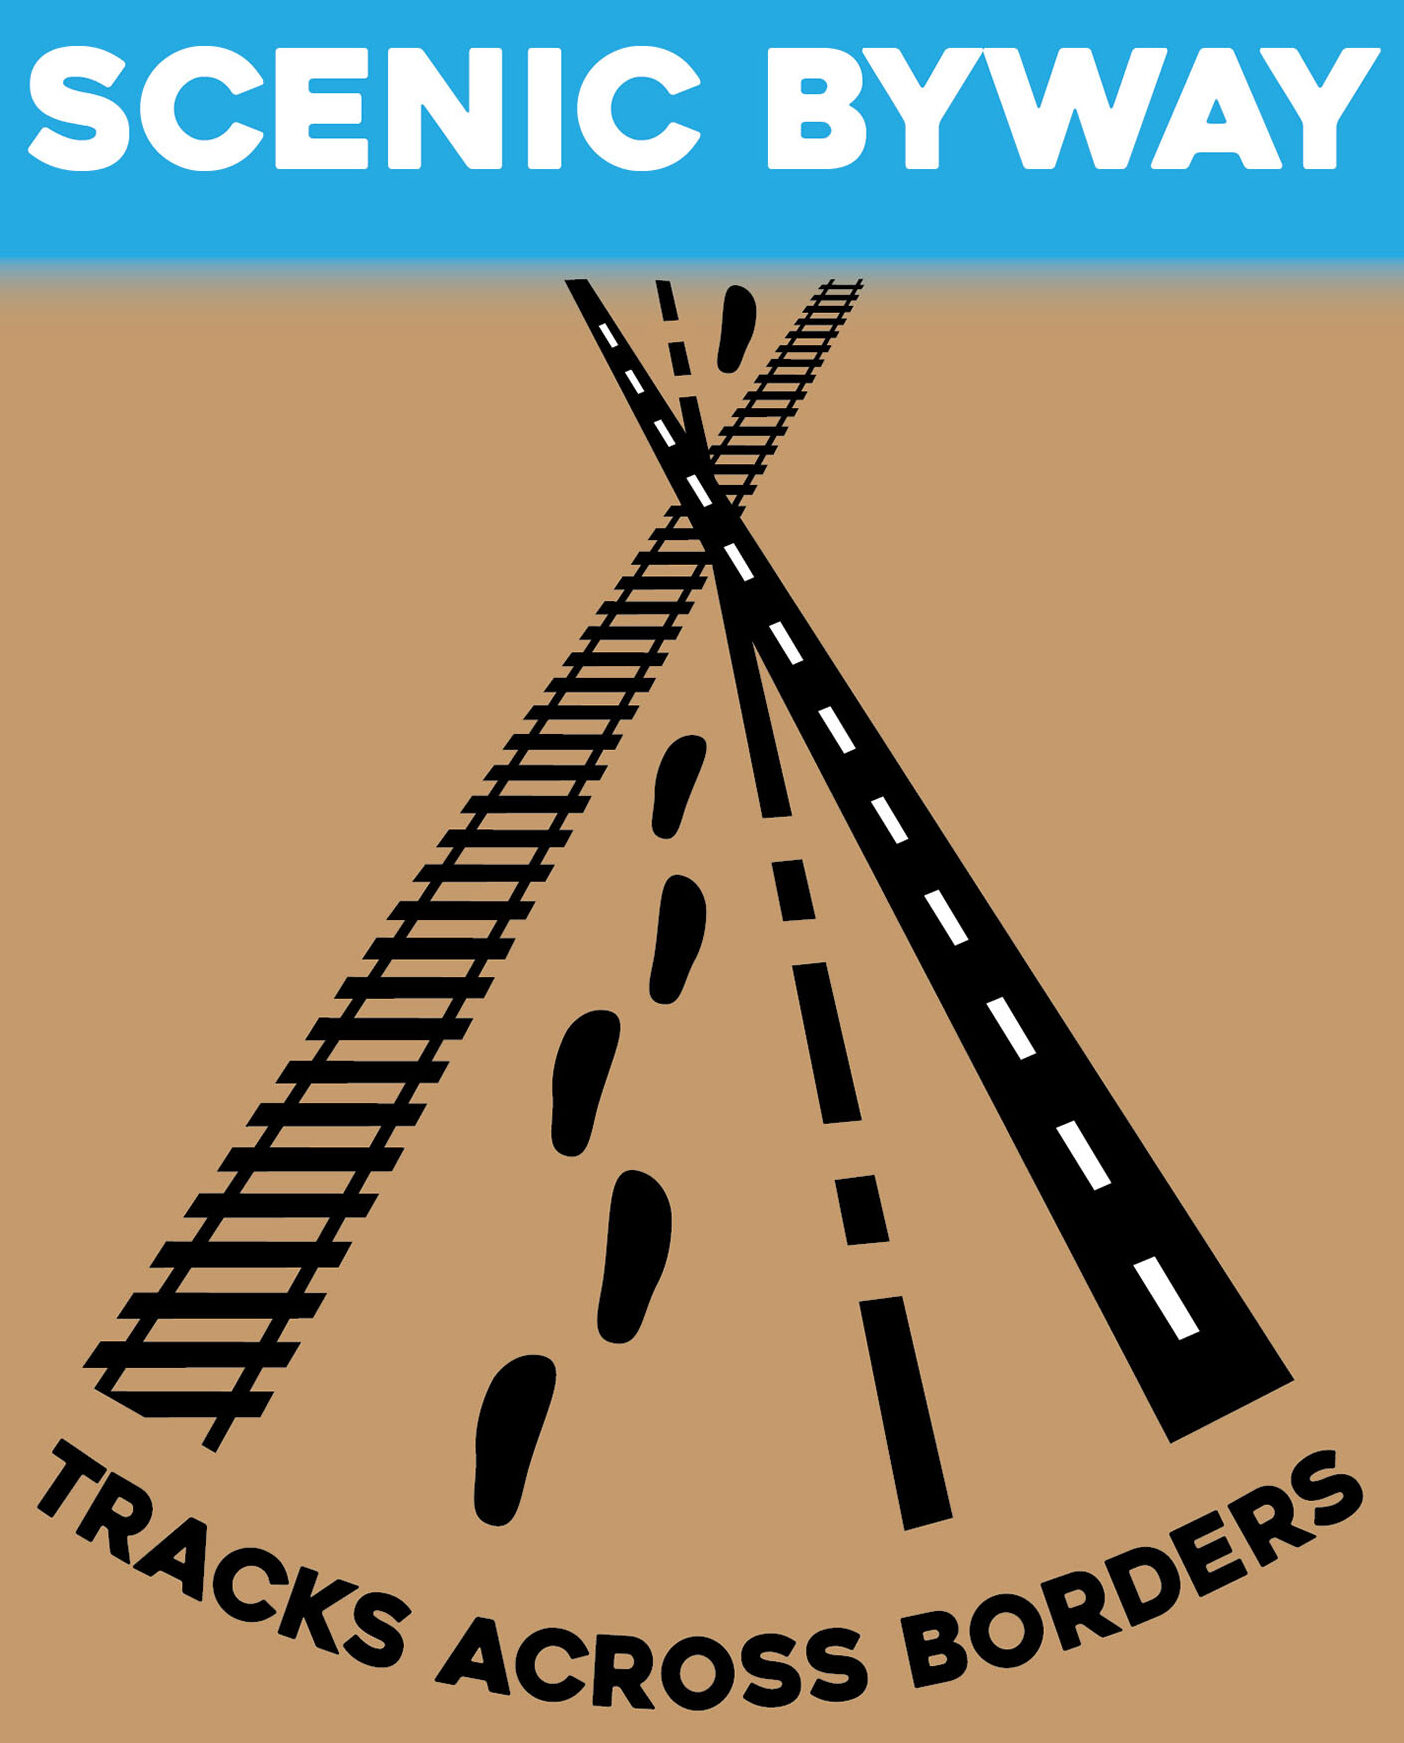 Tracks Across Borders Byway